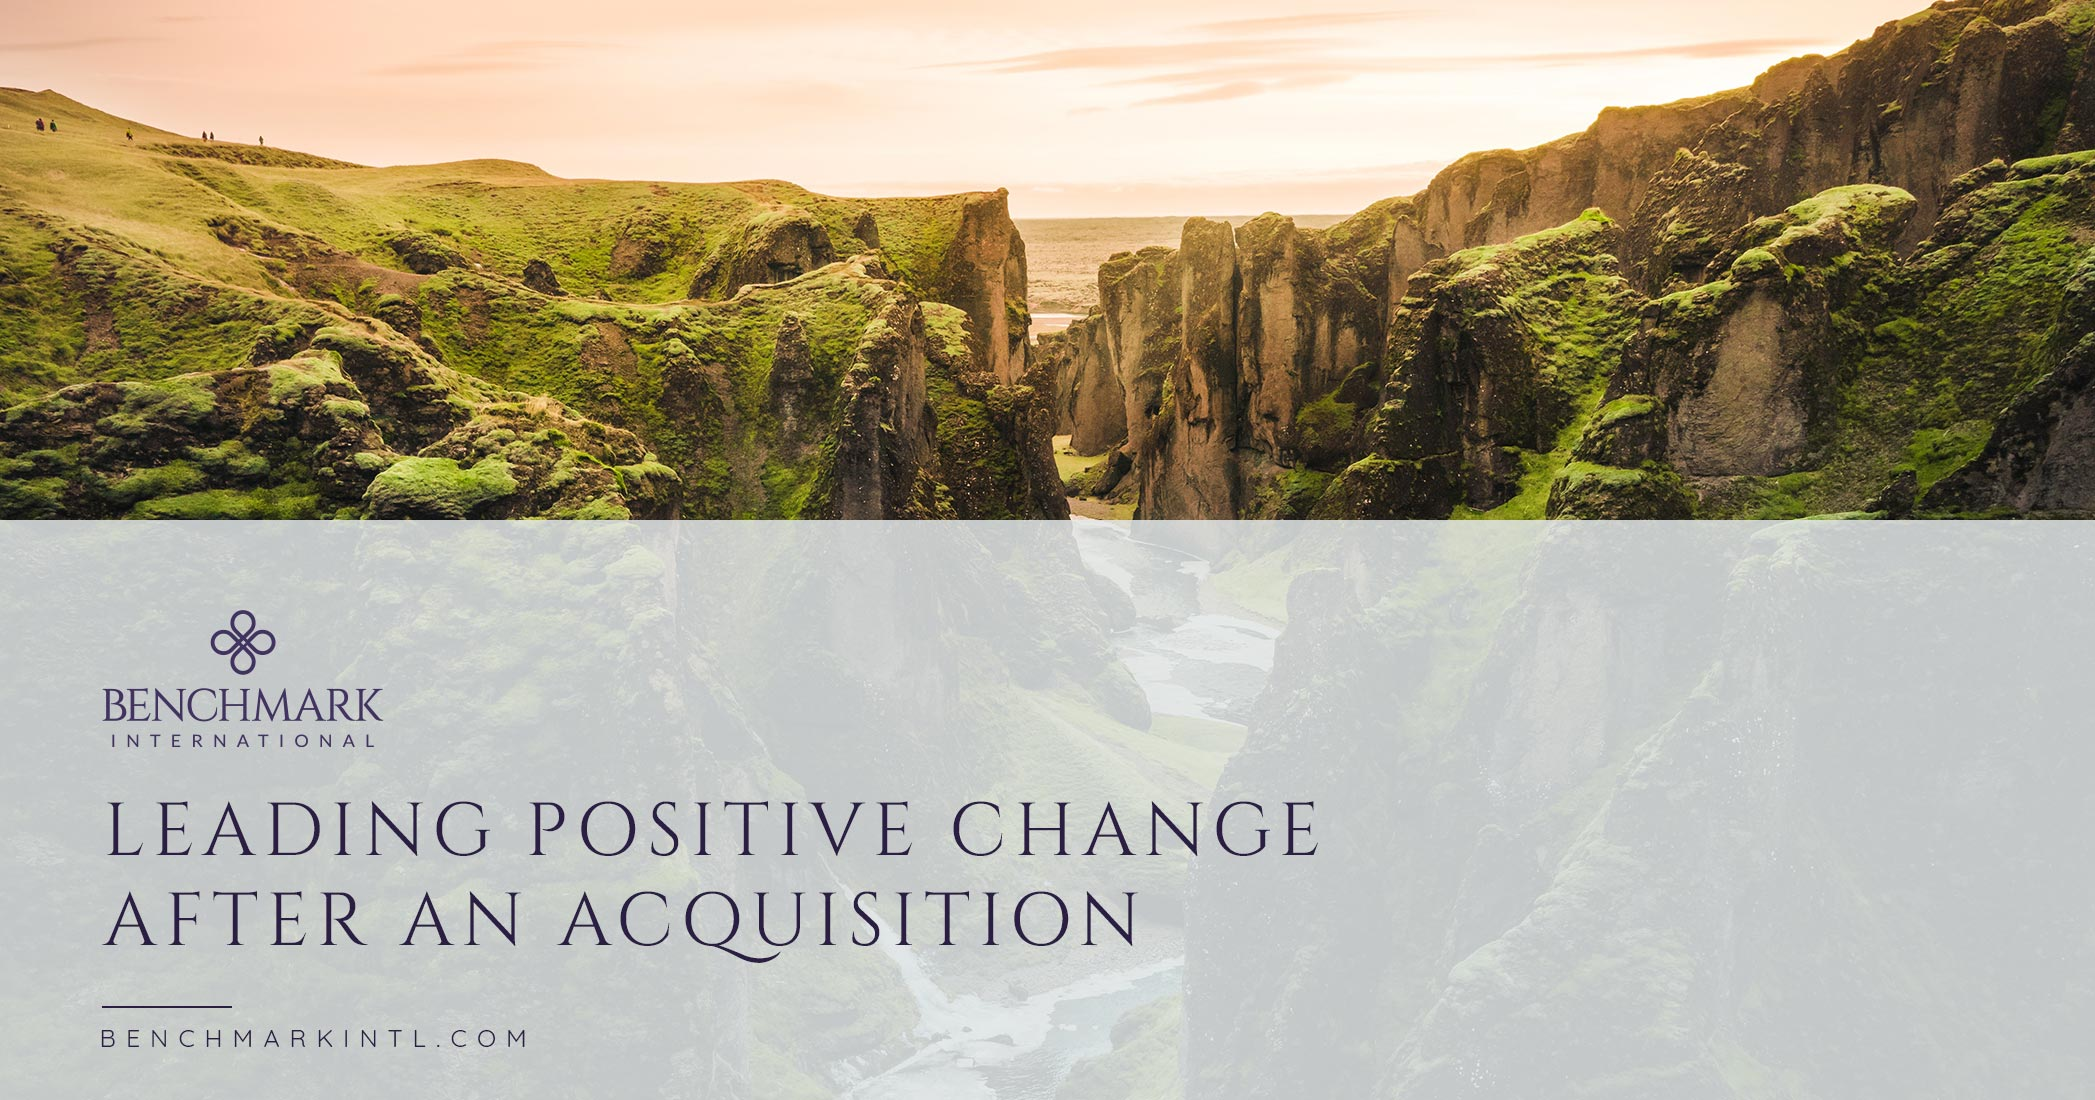 Leading Positive Change After an Acquisition